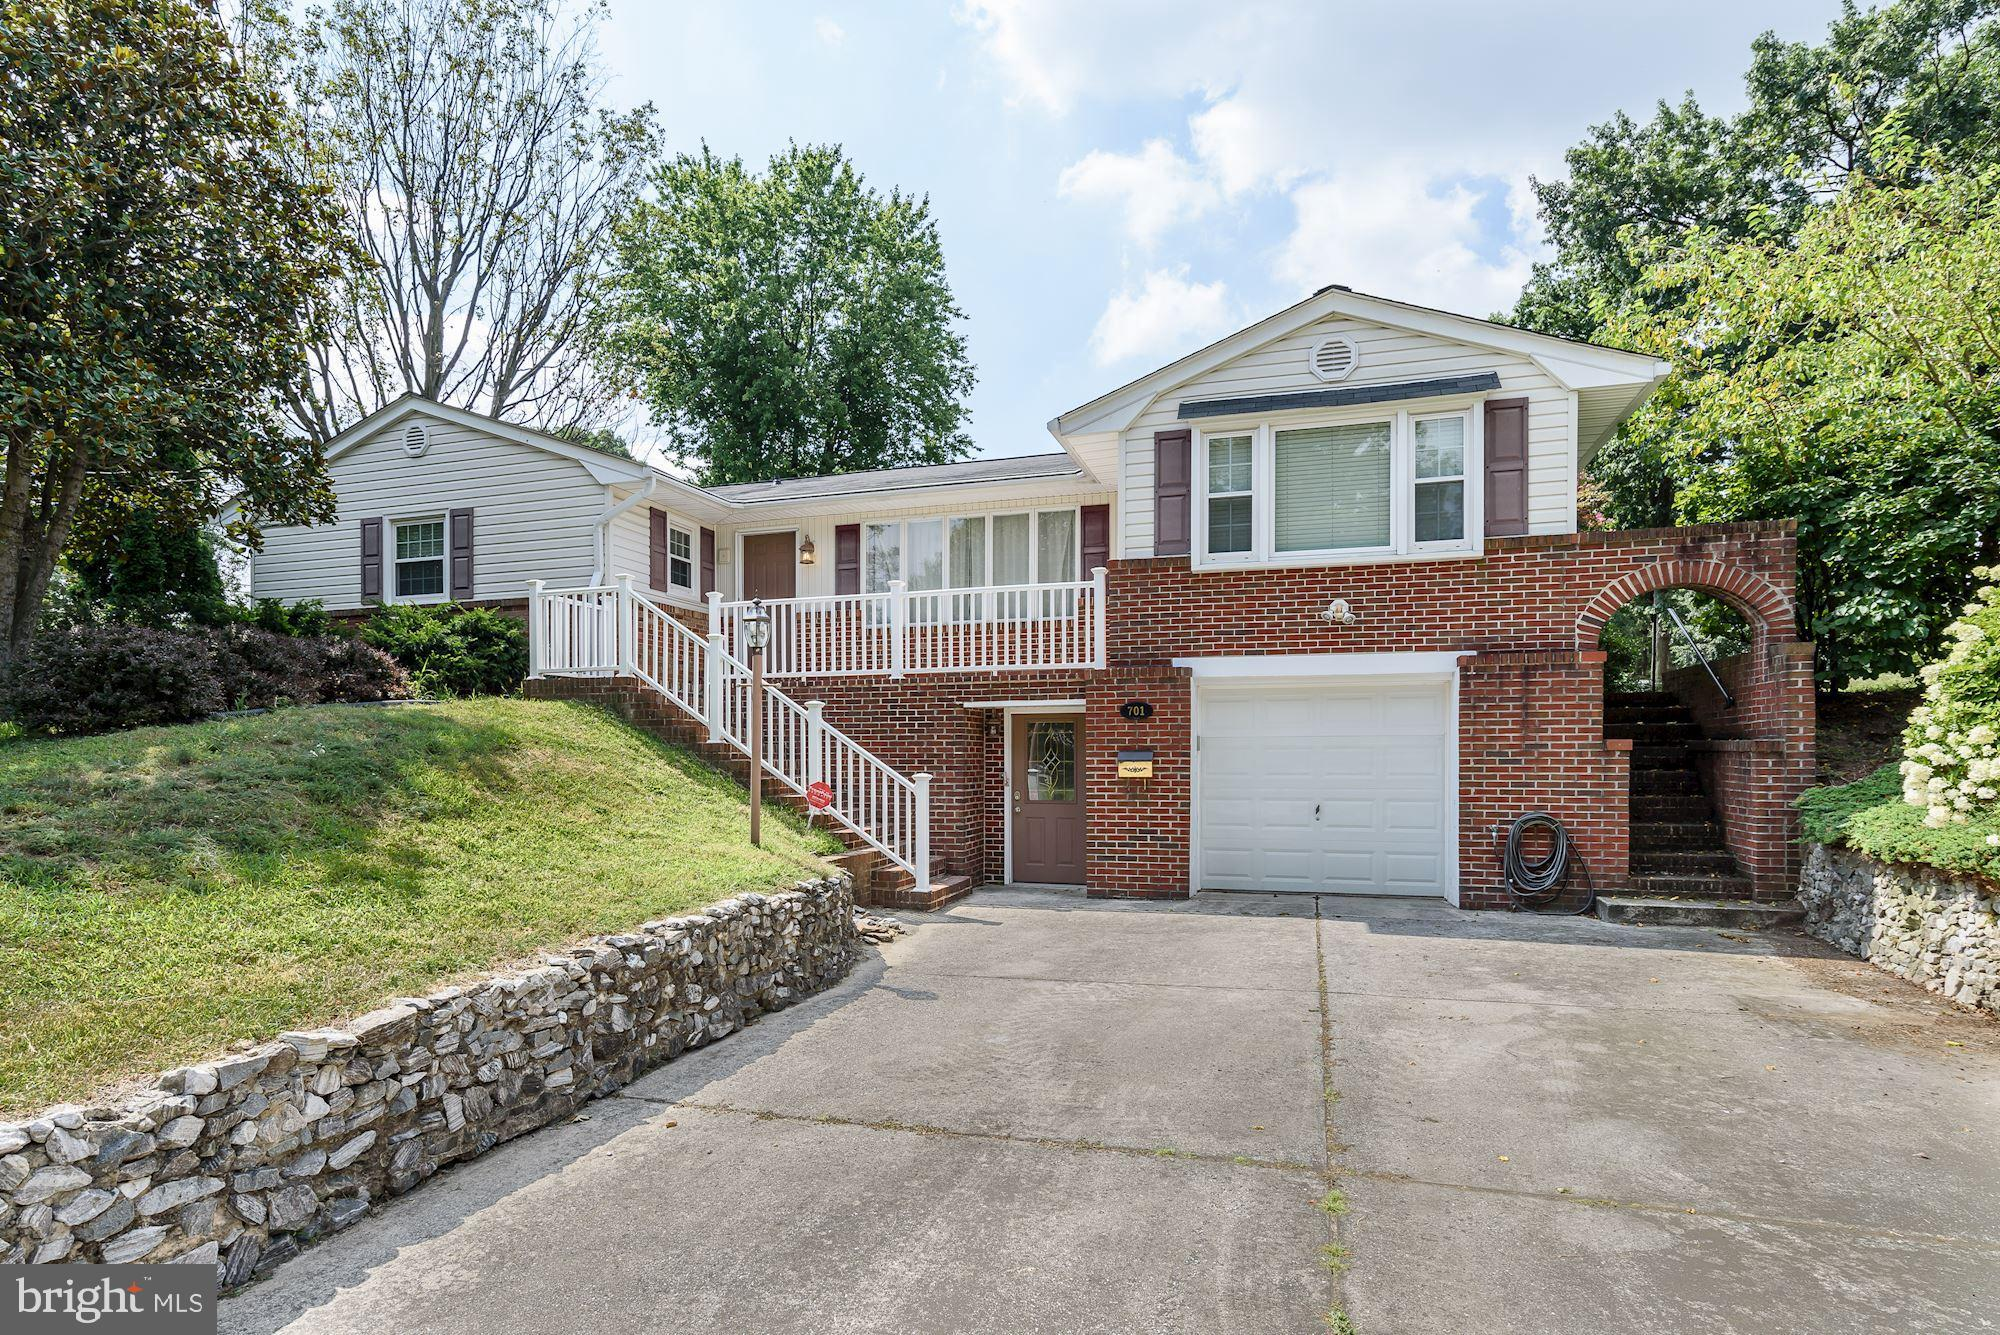 701 W MAPLE ROAD, LINTHICUM HEIGHTS, MD 21090